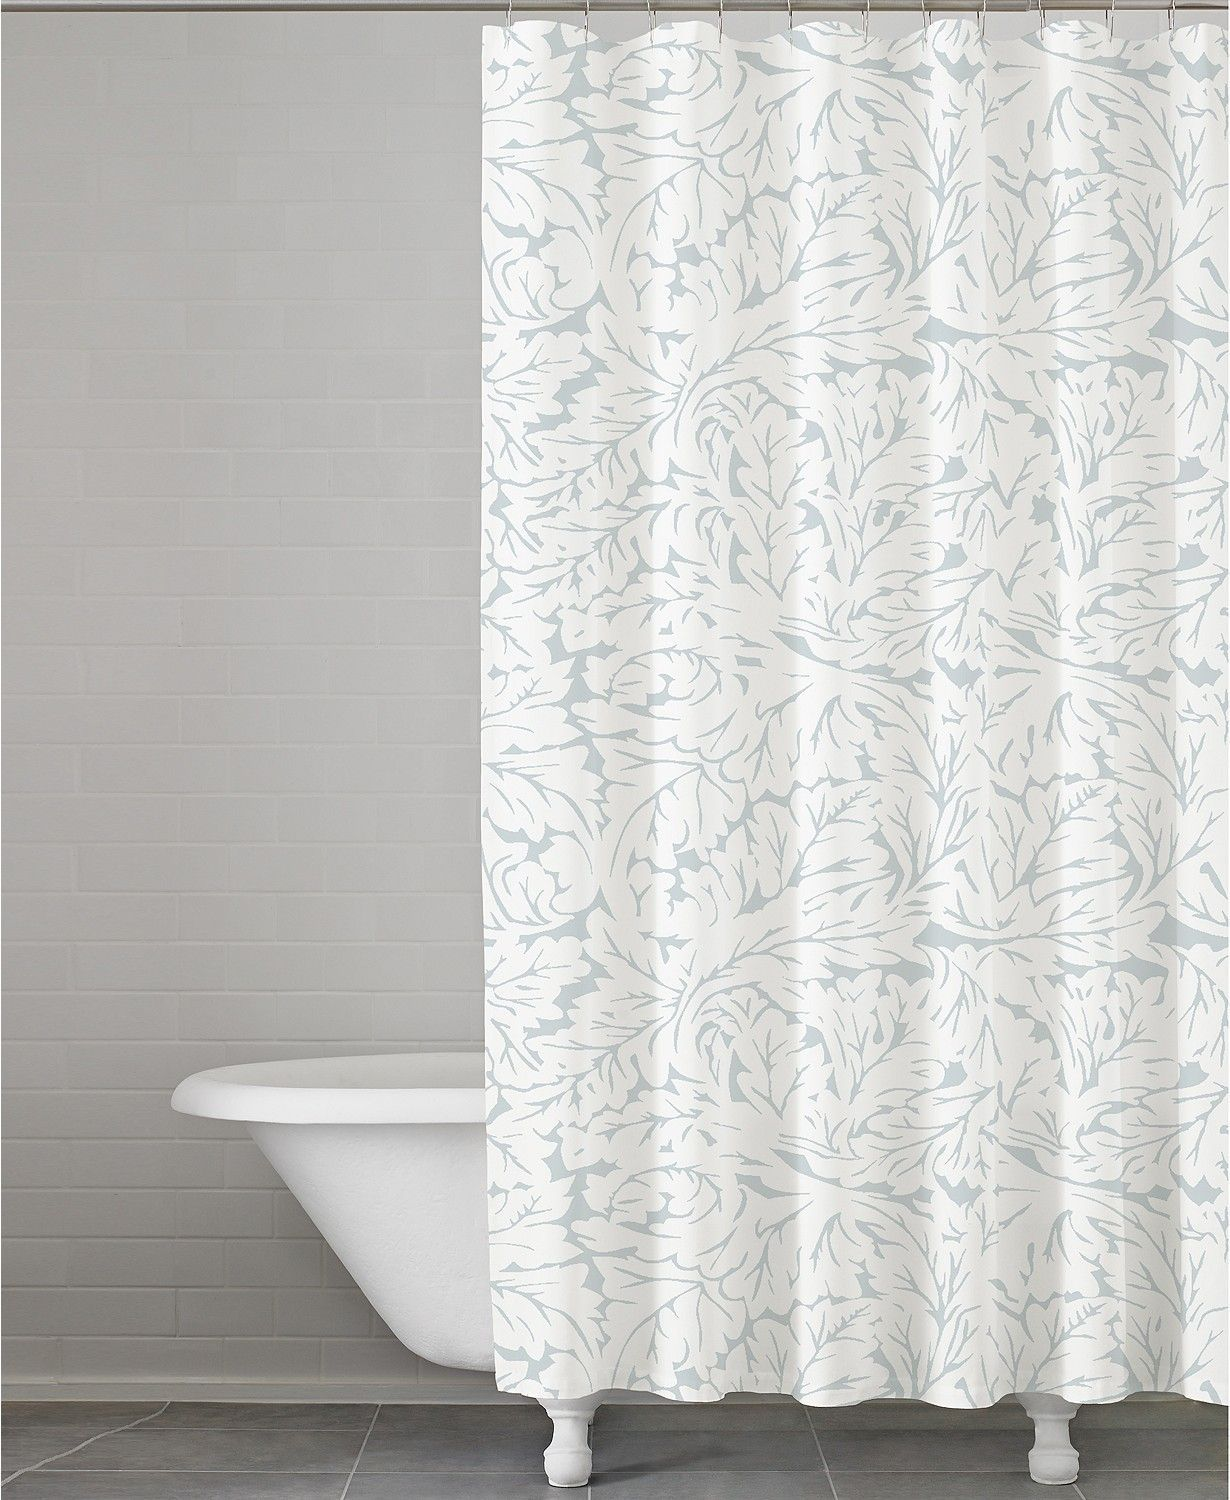 12 Clever Ways How To Upgrade Fabric Shower Curtains Macy S If You